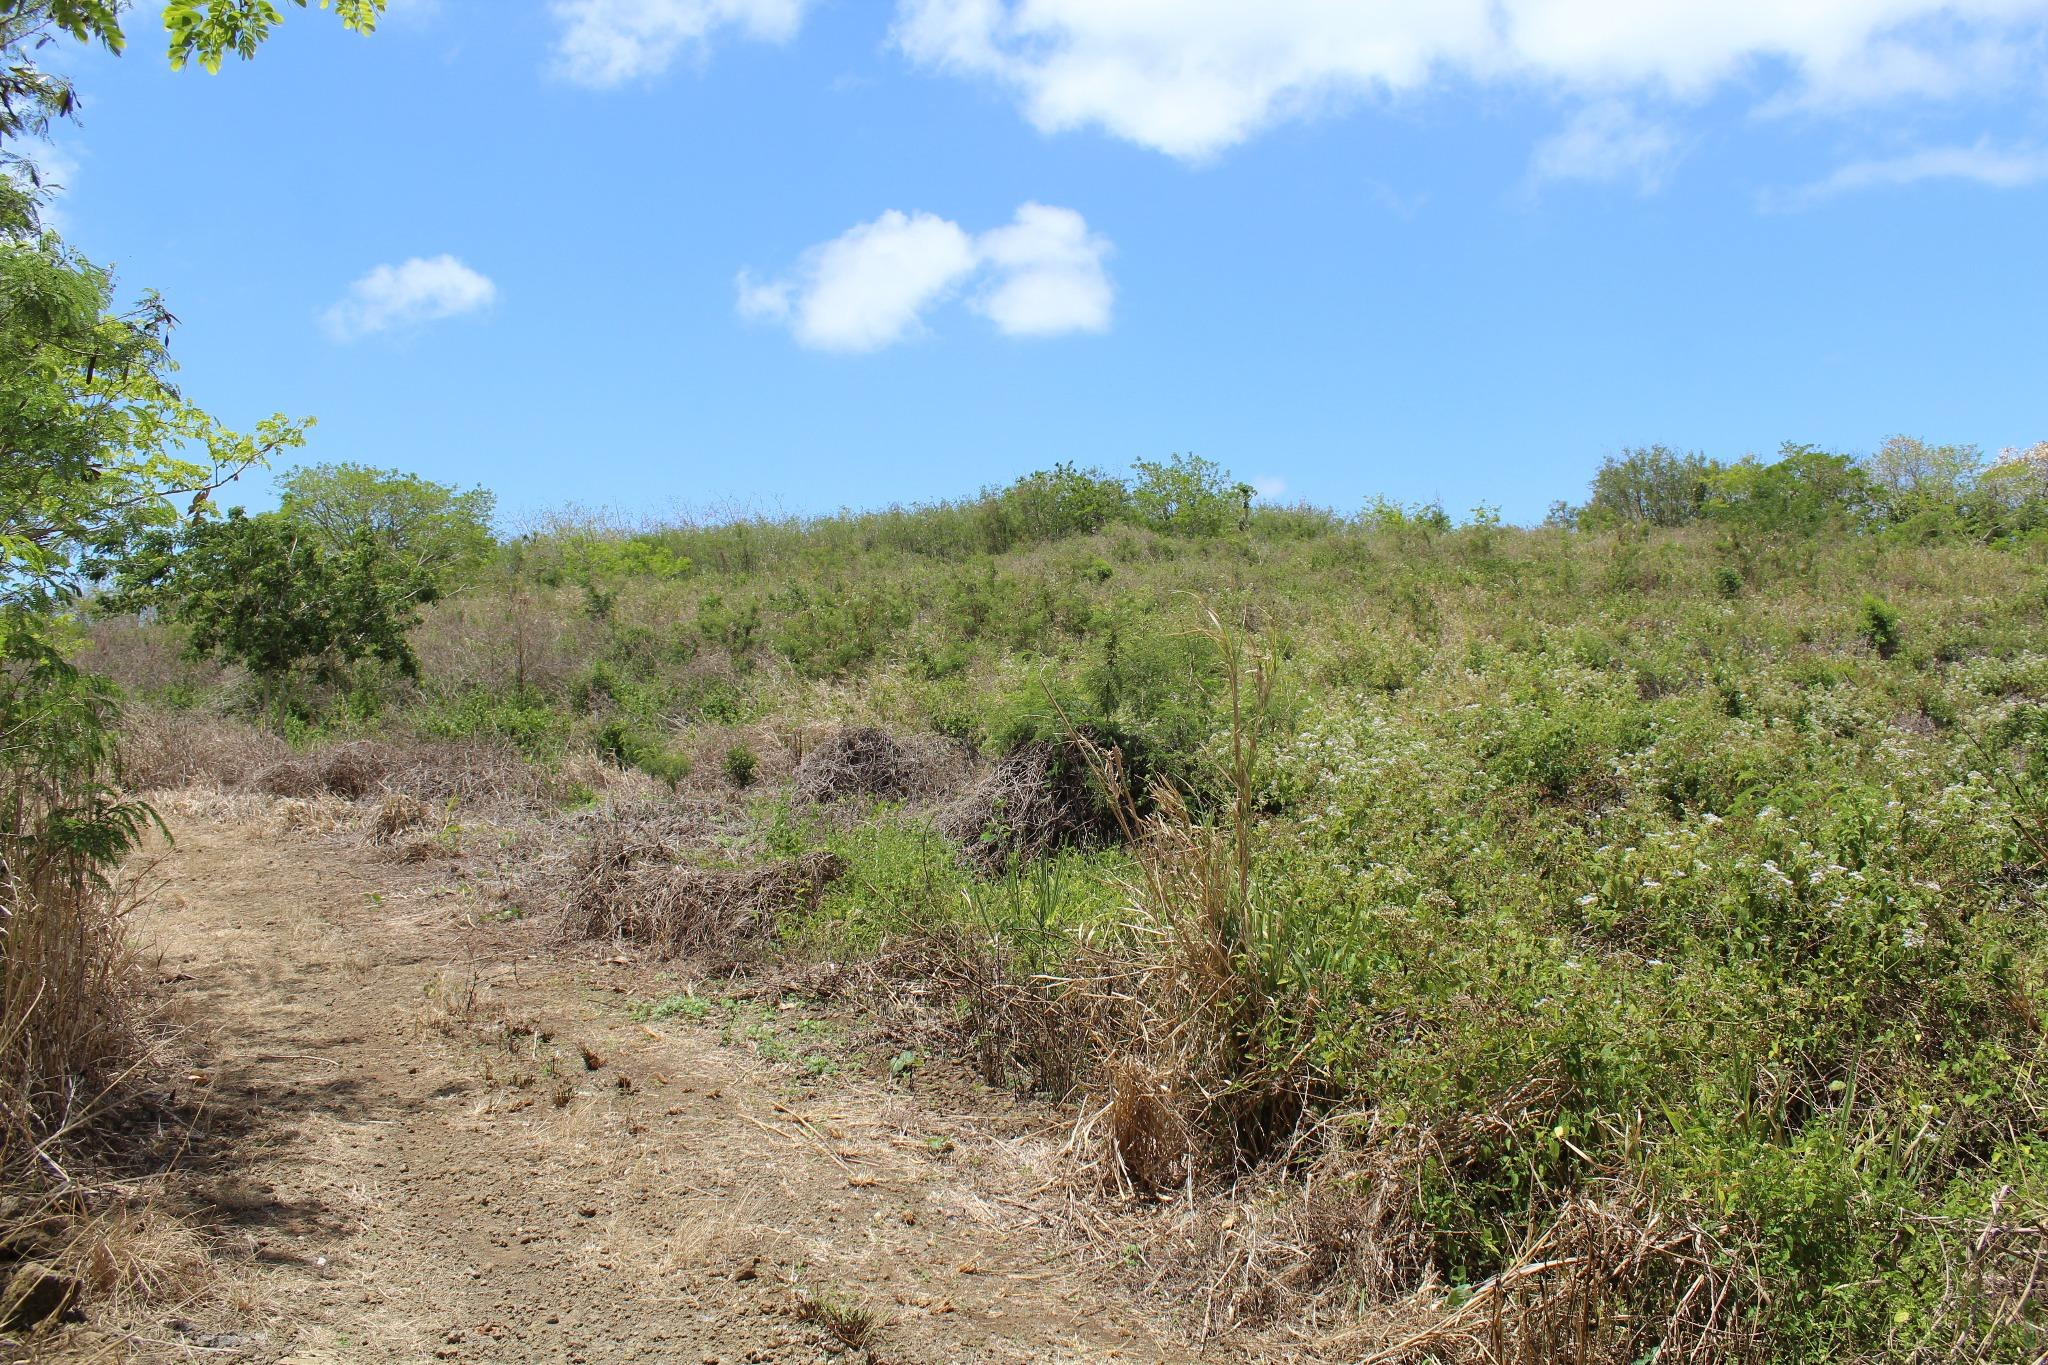 FOR SALE – Agricultural plot of land of 3 acres in Salette in Grand Bay.